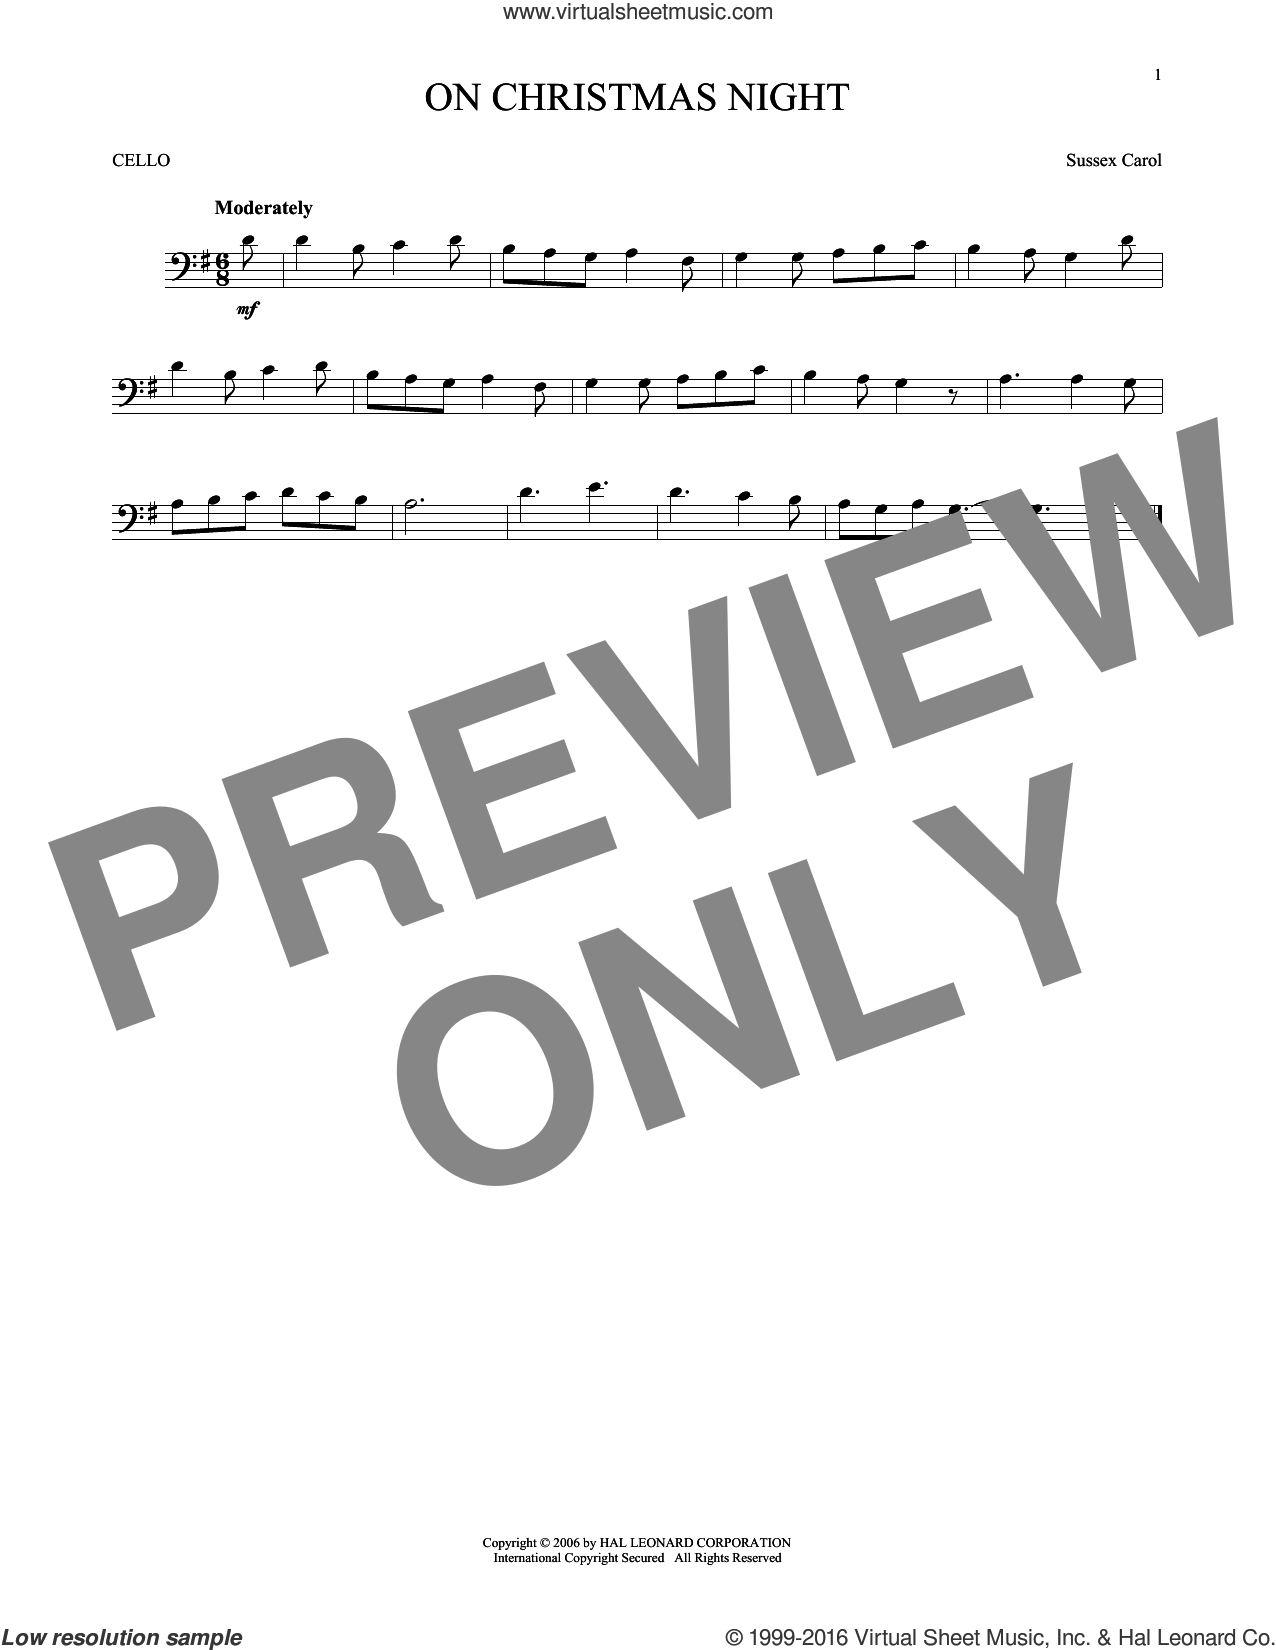 On Christmas Night sheet music for cello solo, intermediate skill level